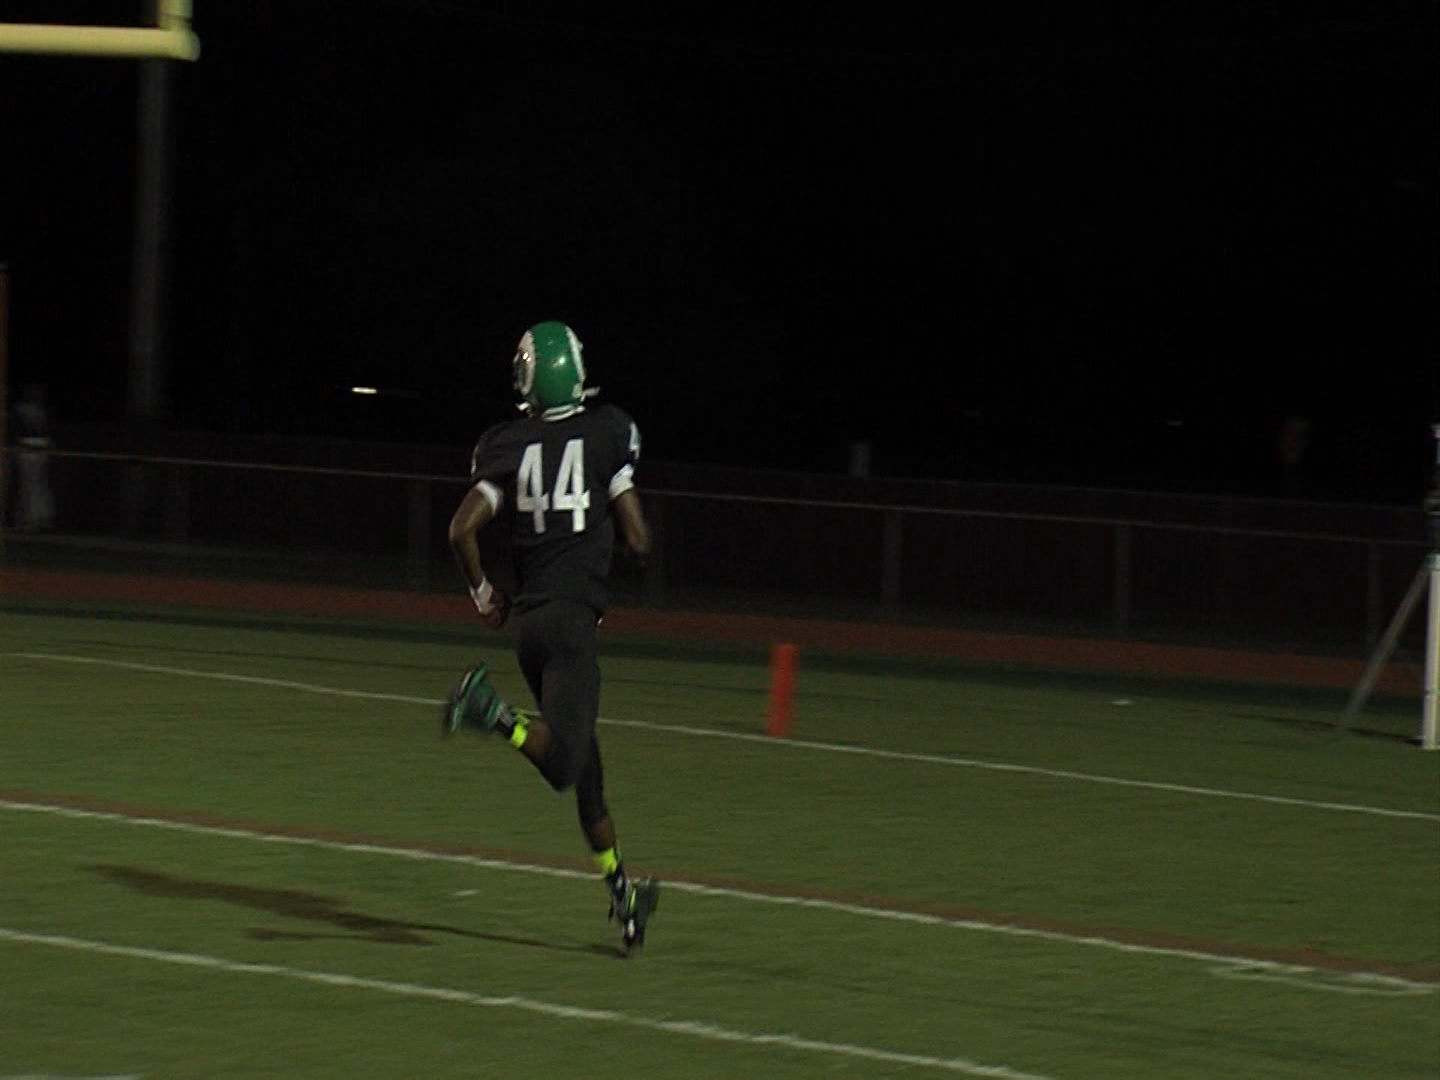 The Scouting Report – Easton at Parkside